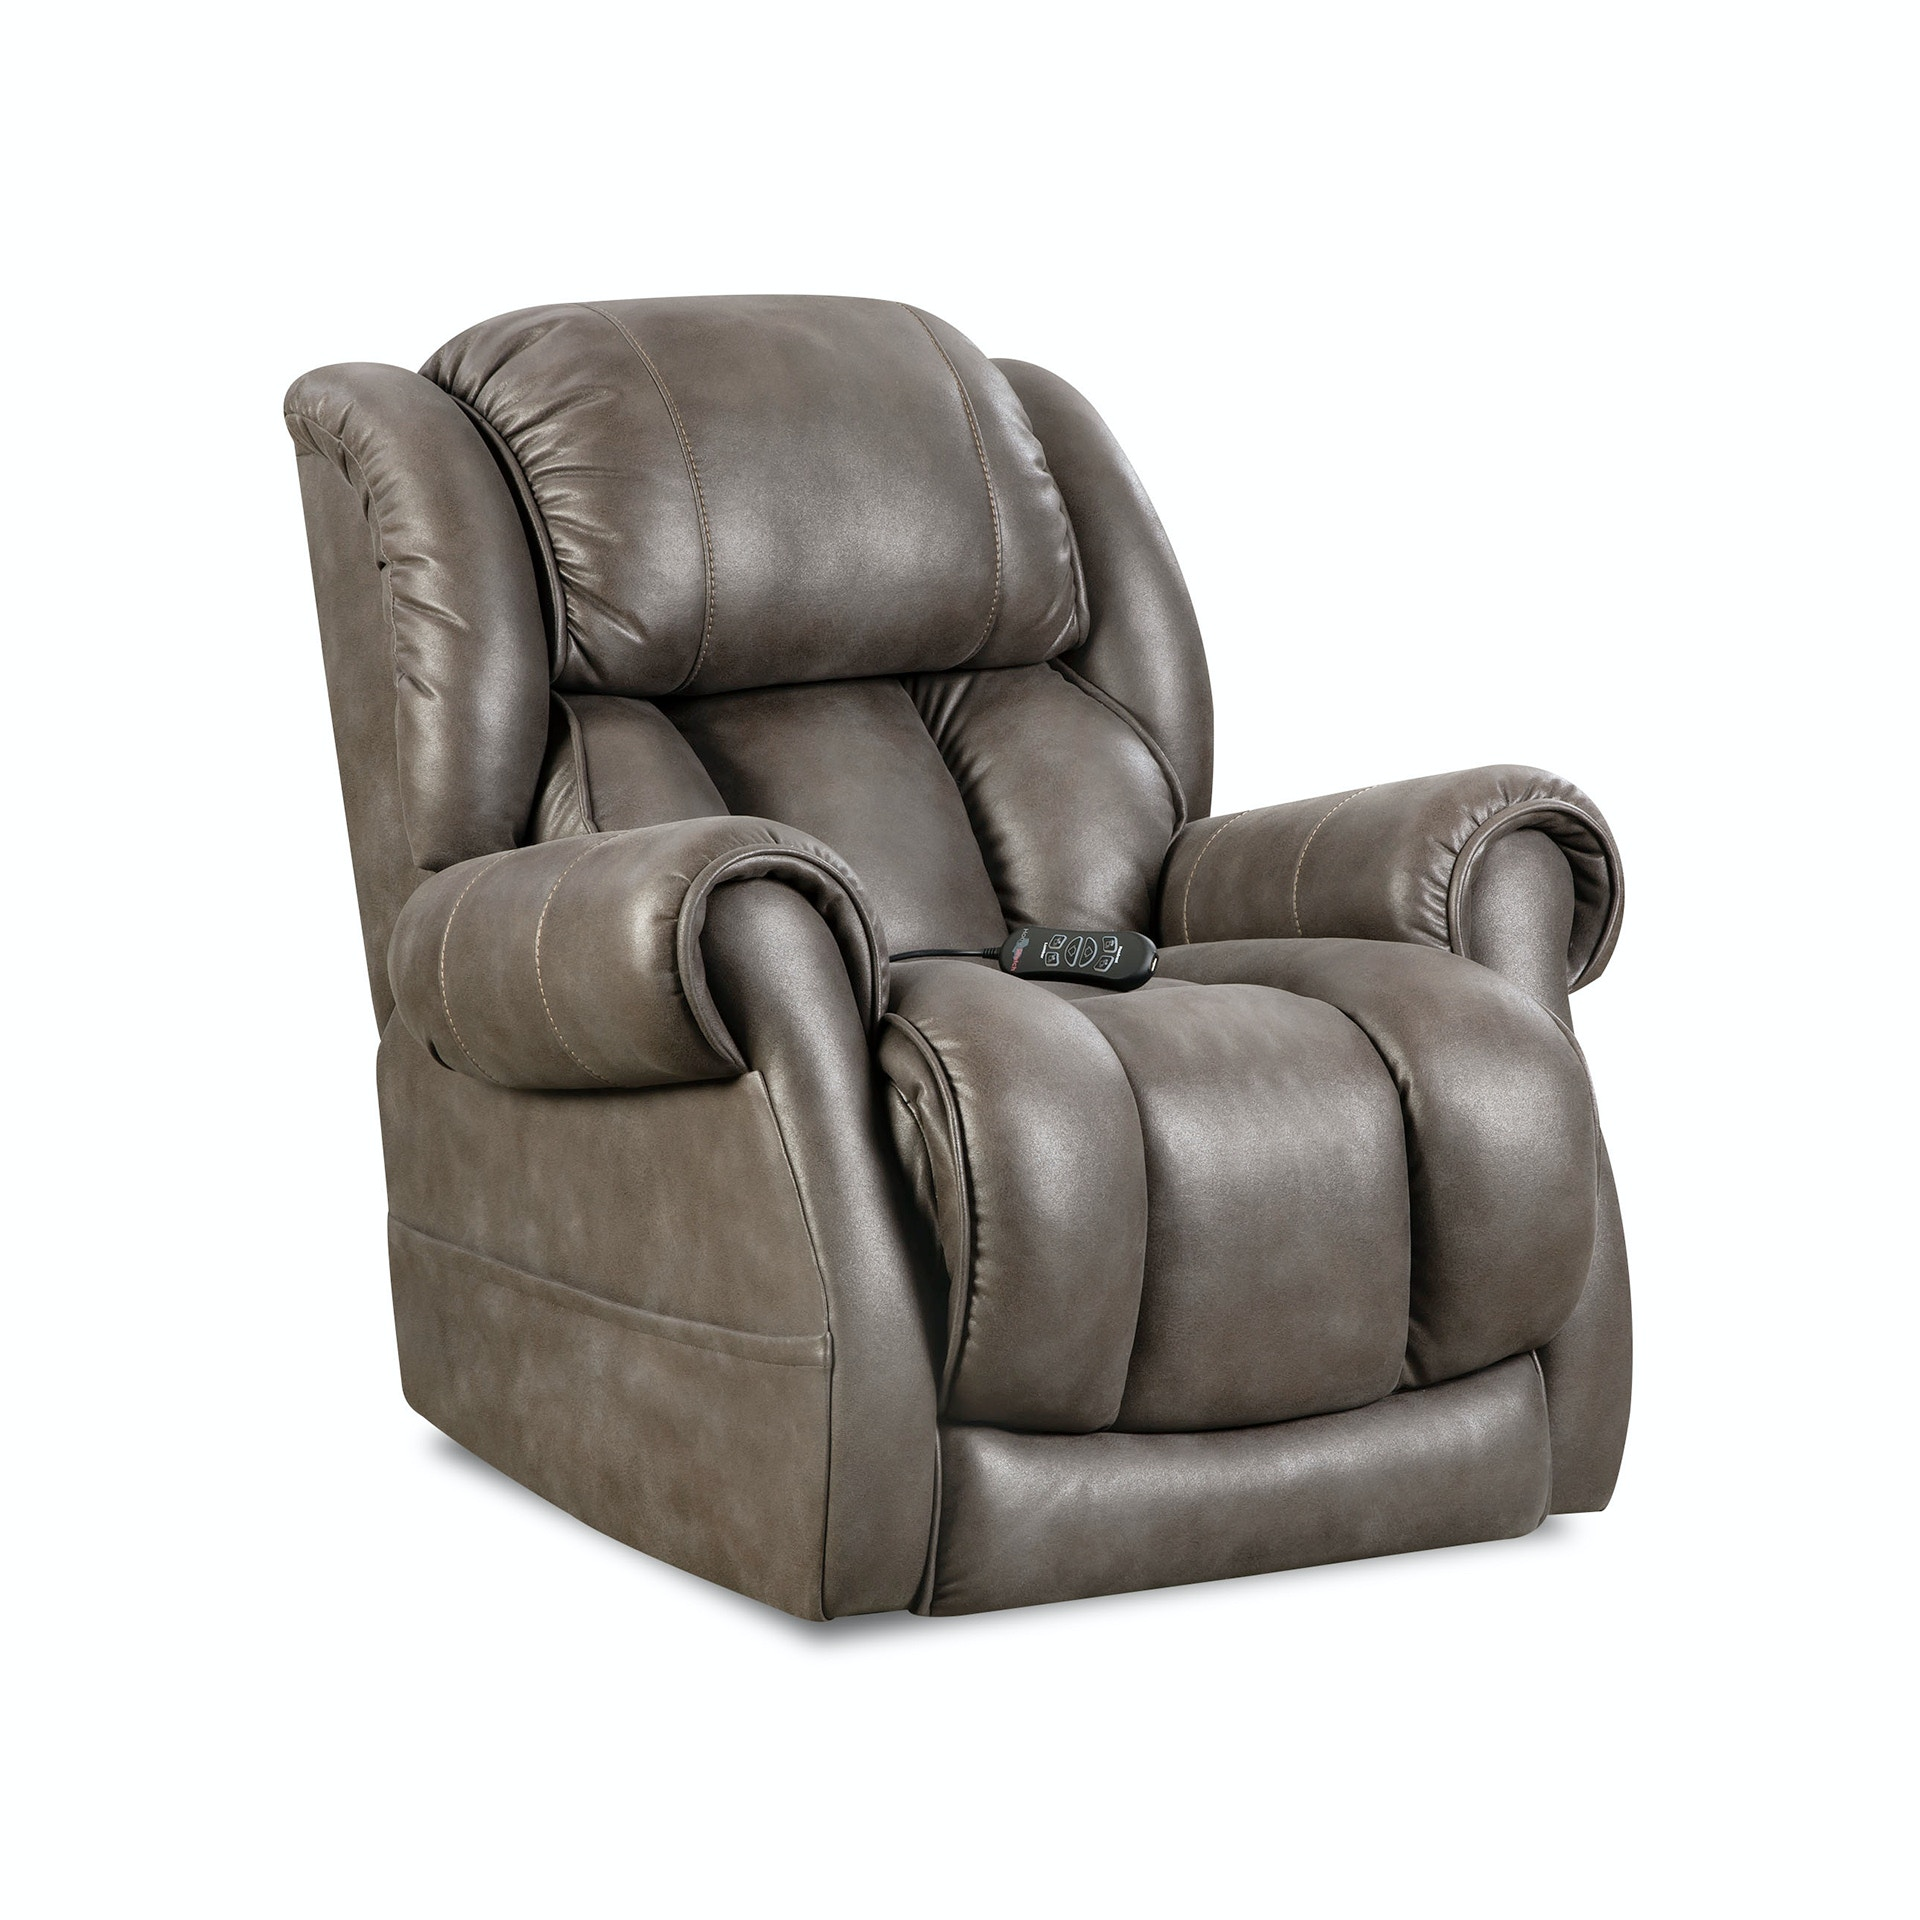 Home Stretch Custom Comfort Power Wallsaver Recliner 146 97 14